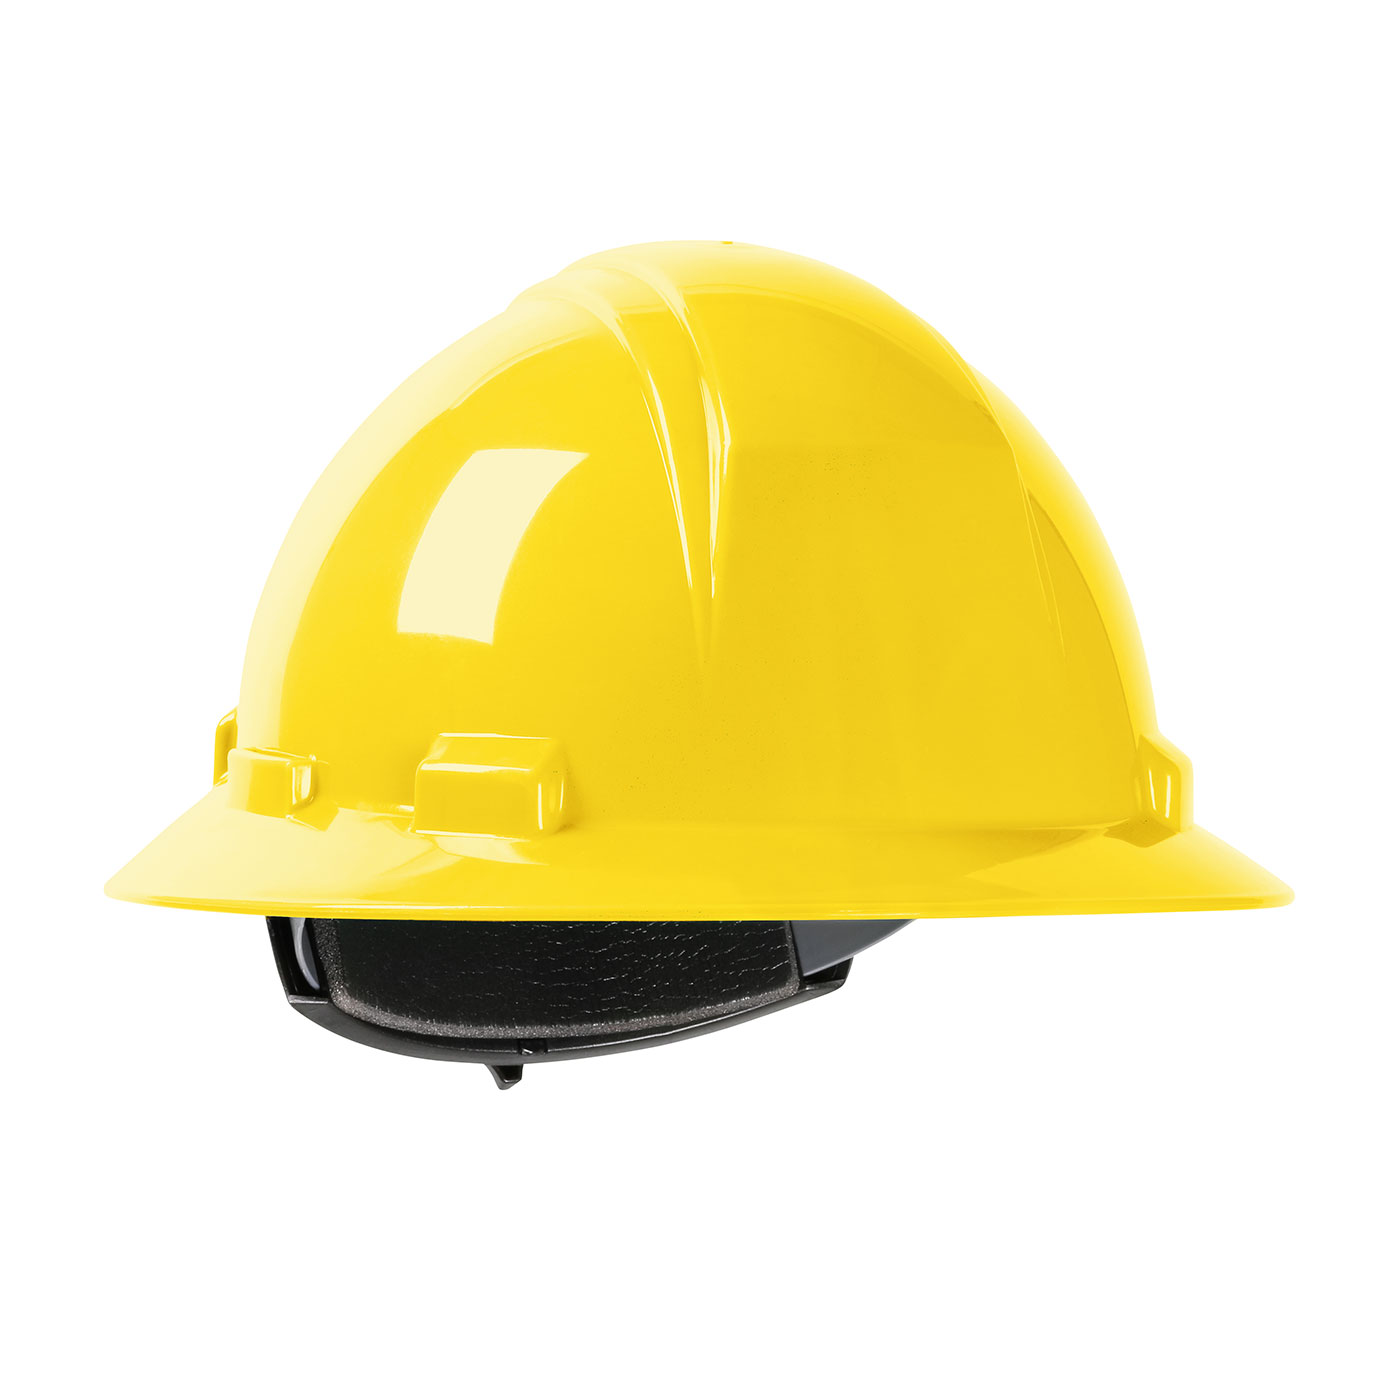 280-HP261R PIP® Dynamic Kilimanjaro™ Full Brim Hard Hat with HDPE Shell, 4-Point Textile Suspension and Wheel Ratchet Adjustment - Yellow